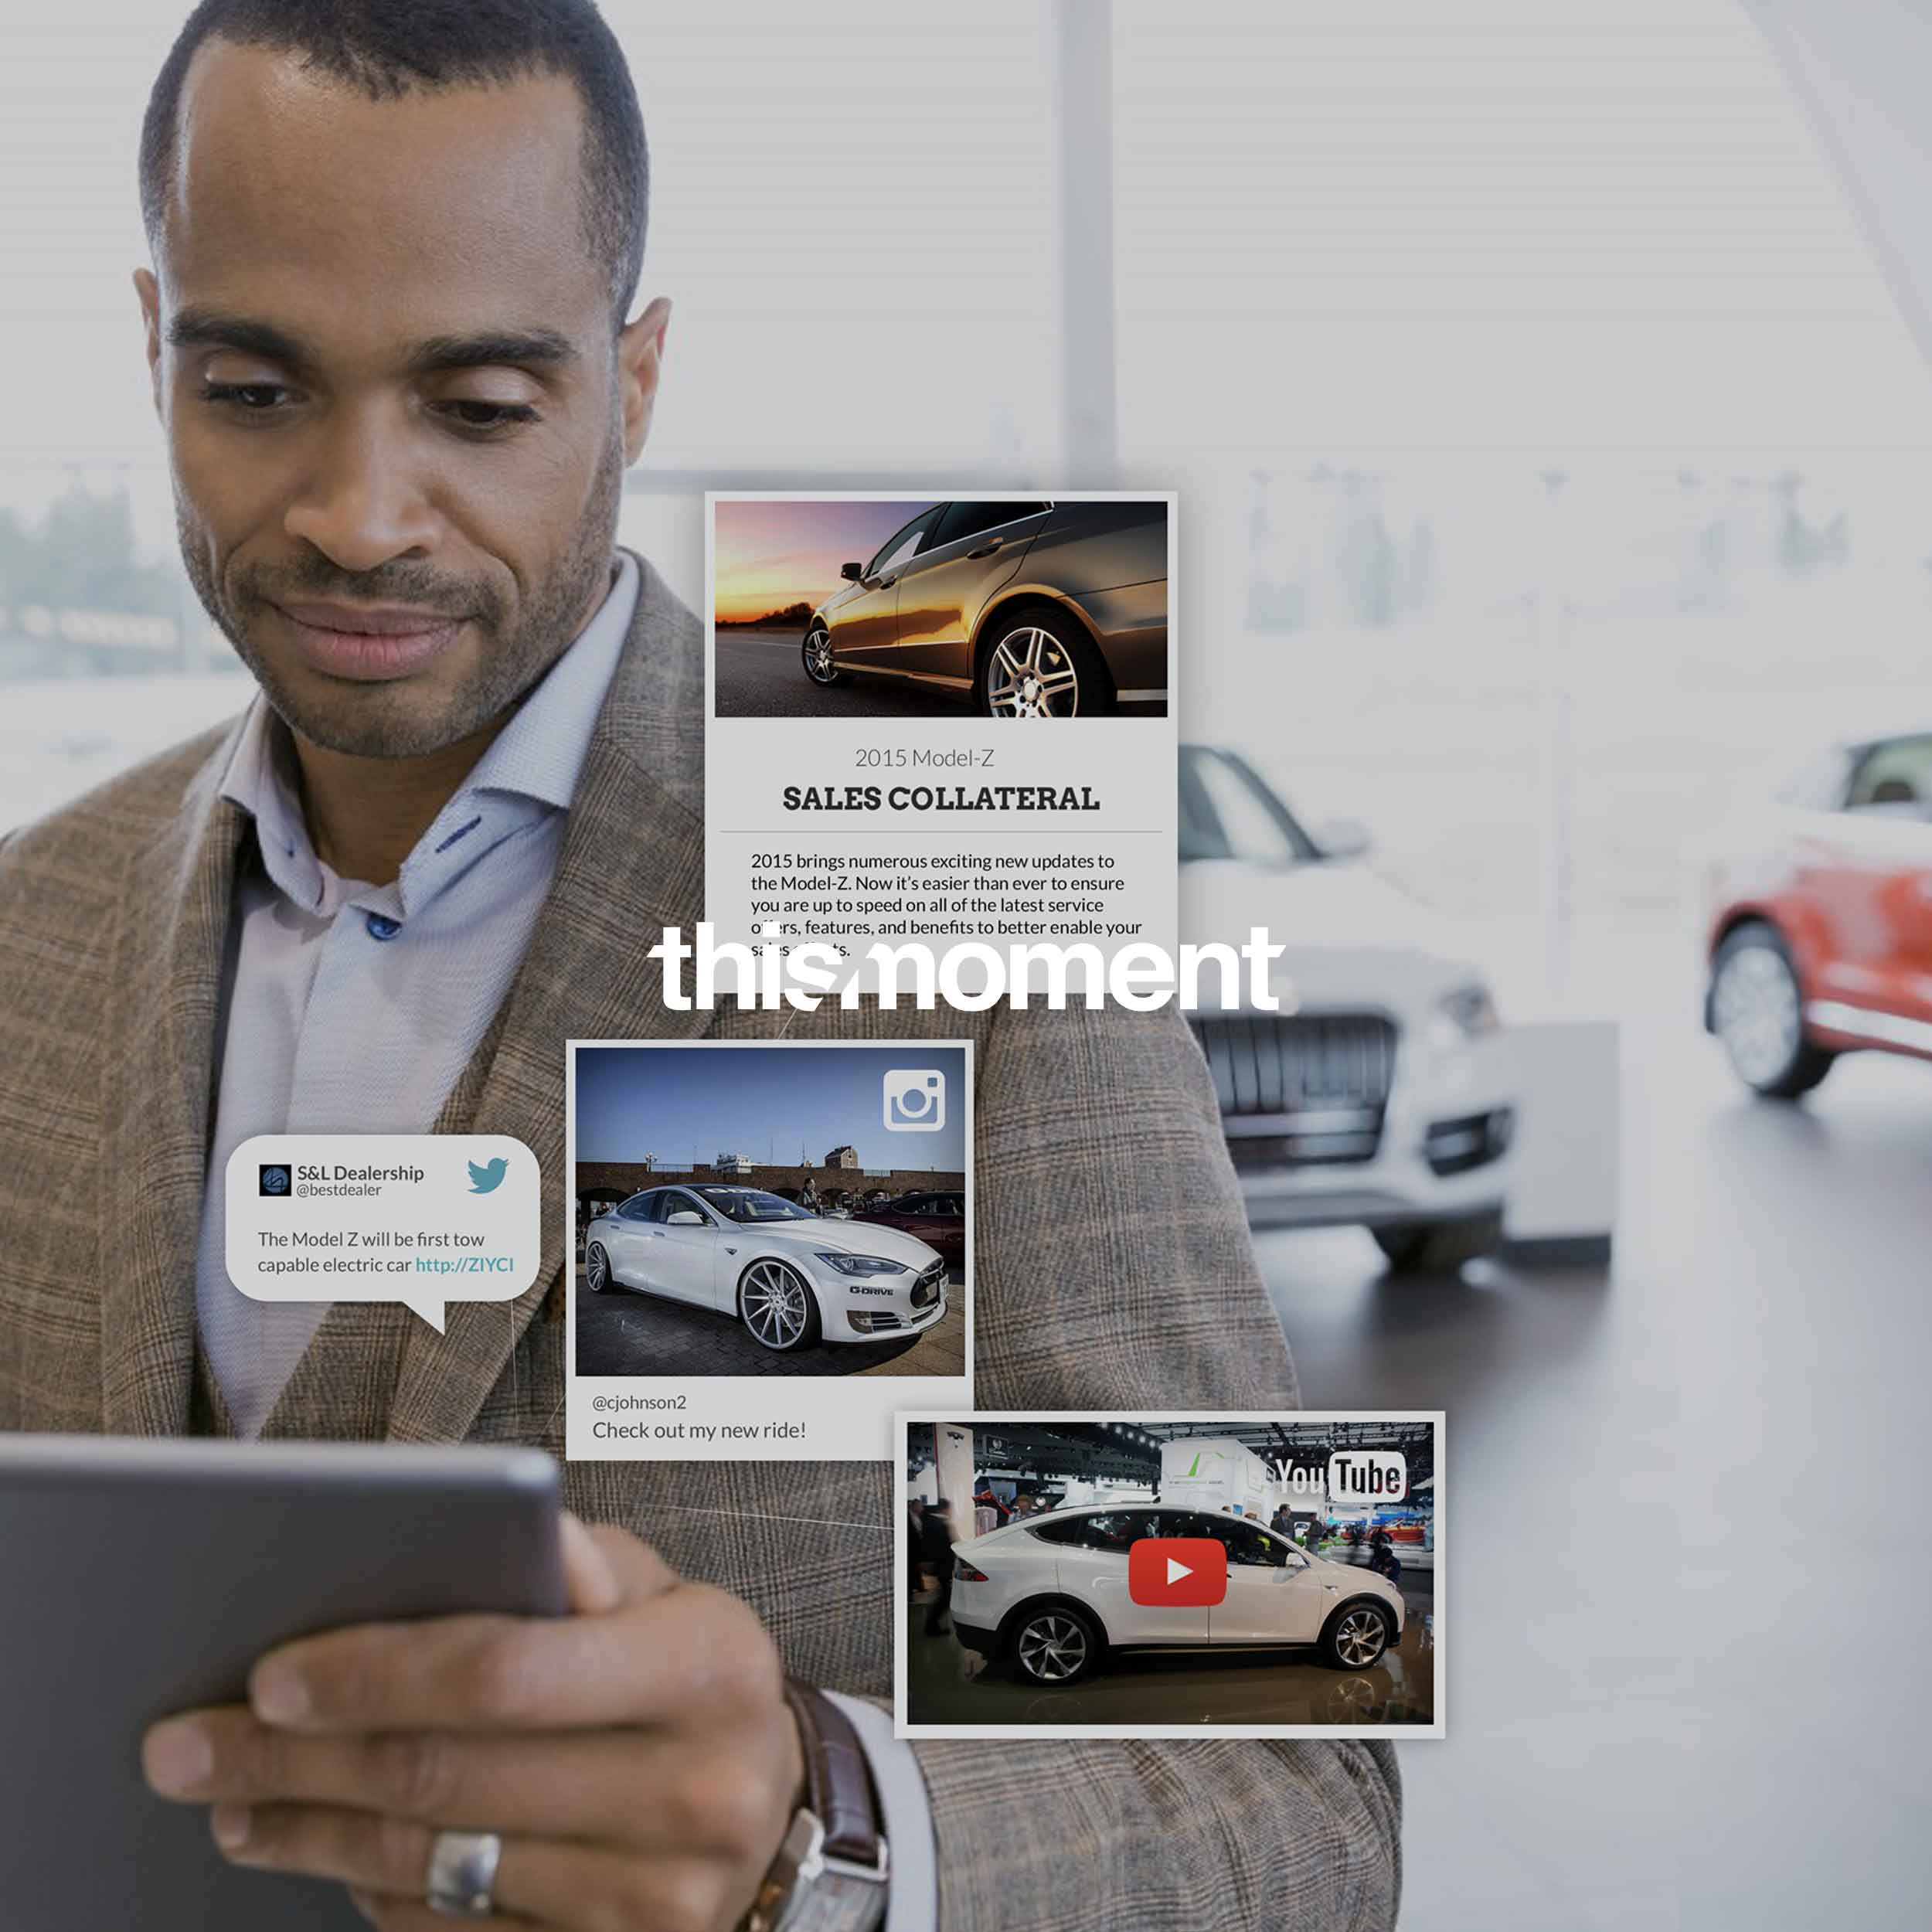 A car salesman using the Thismoment platform to create a playlist for his customers.